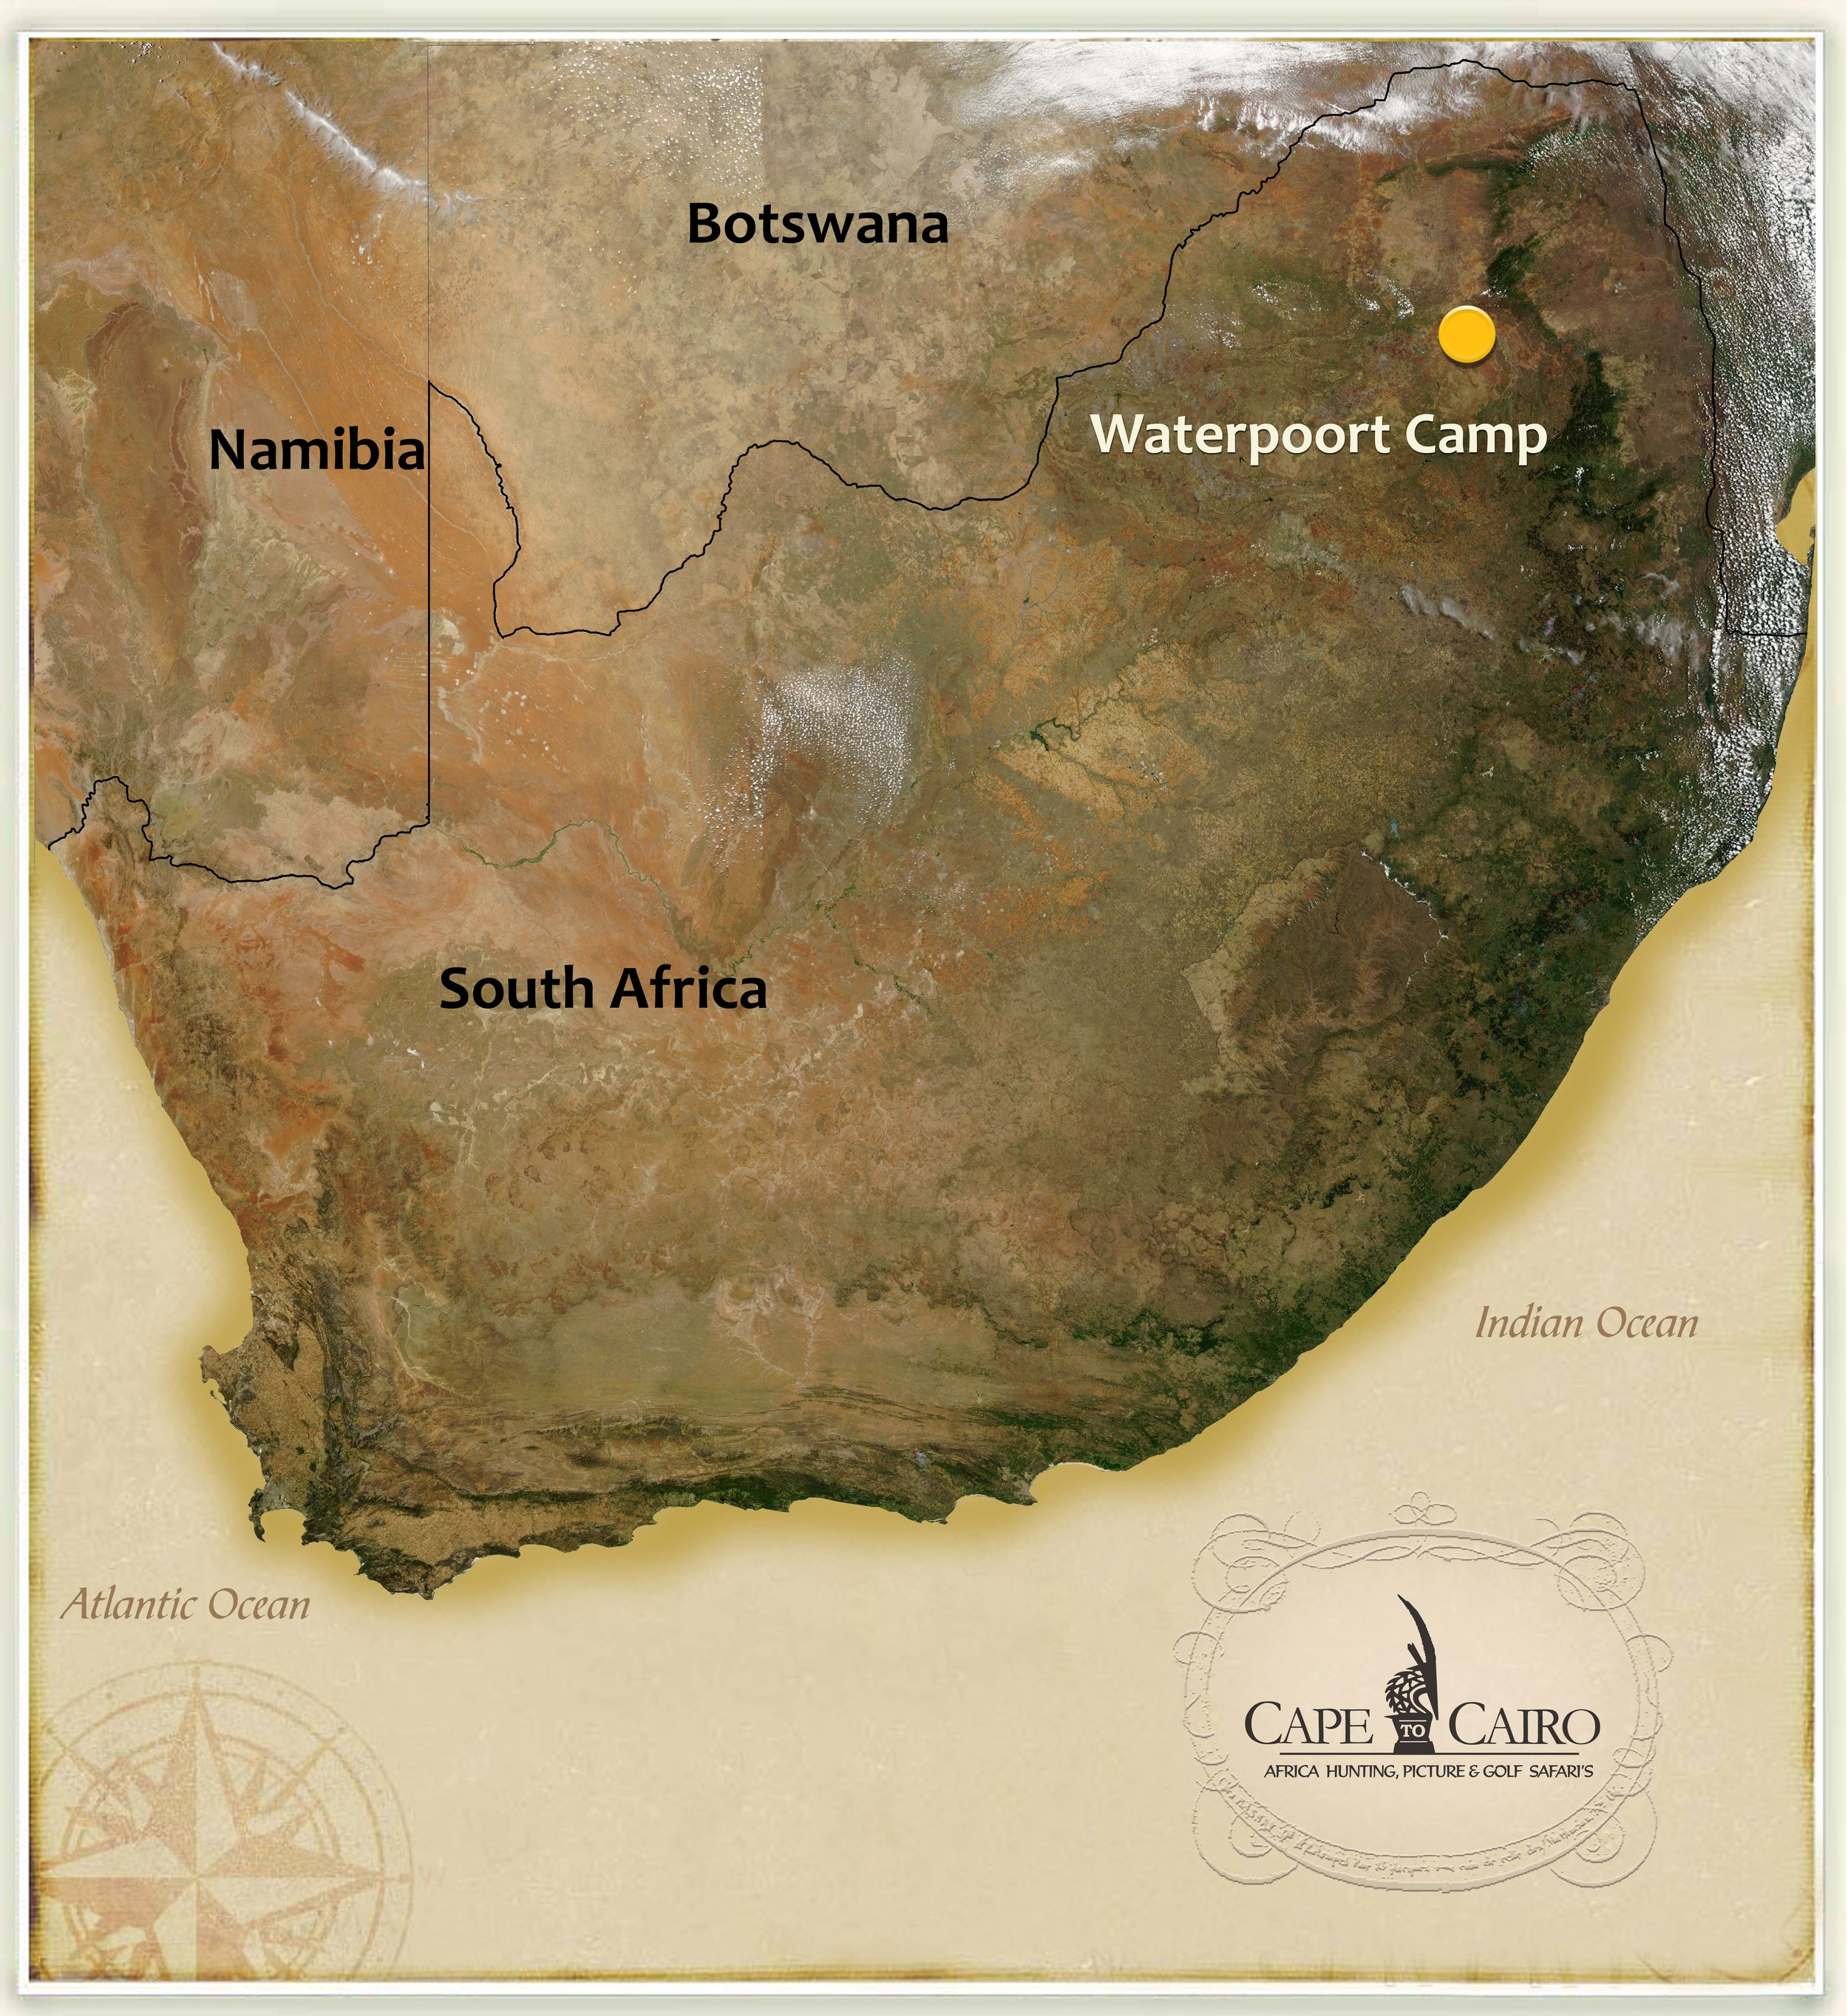 Location - The camp is situated approximately 40km's North East of the town of WaterPoort in South Africa's Limpopo Province.This area is  famous for it's open grasslands and abundant game in the open grass fields.   The 55,000 acre hunting area is home to a myriad of game species including leopard white rhino giraffe, eland, kudu, zebra, blue wildebeest, and many many more